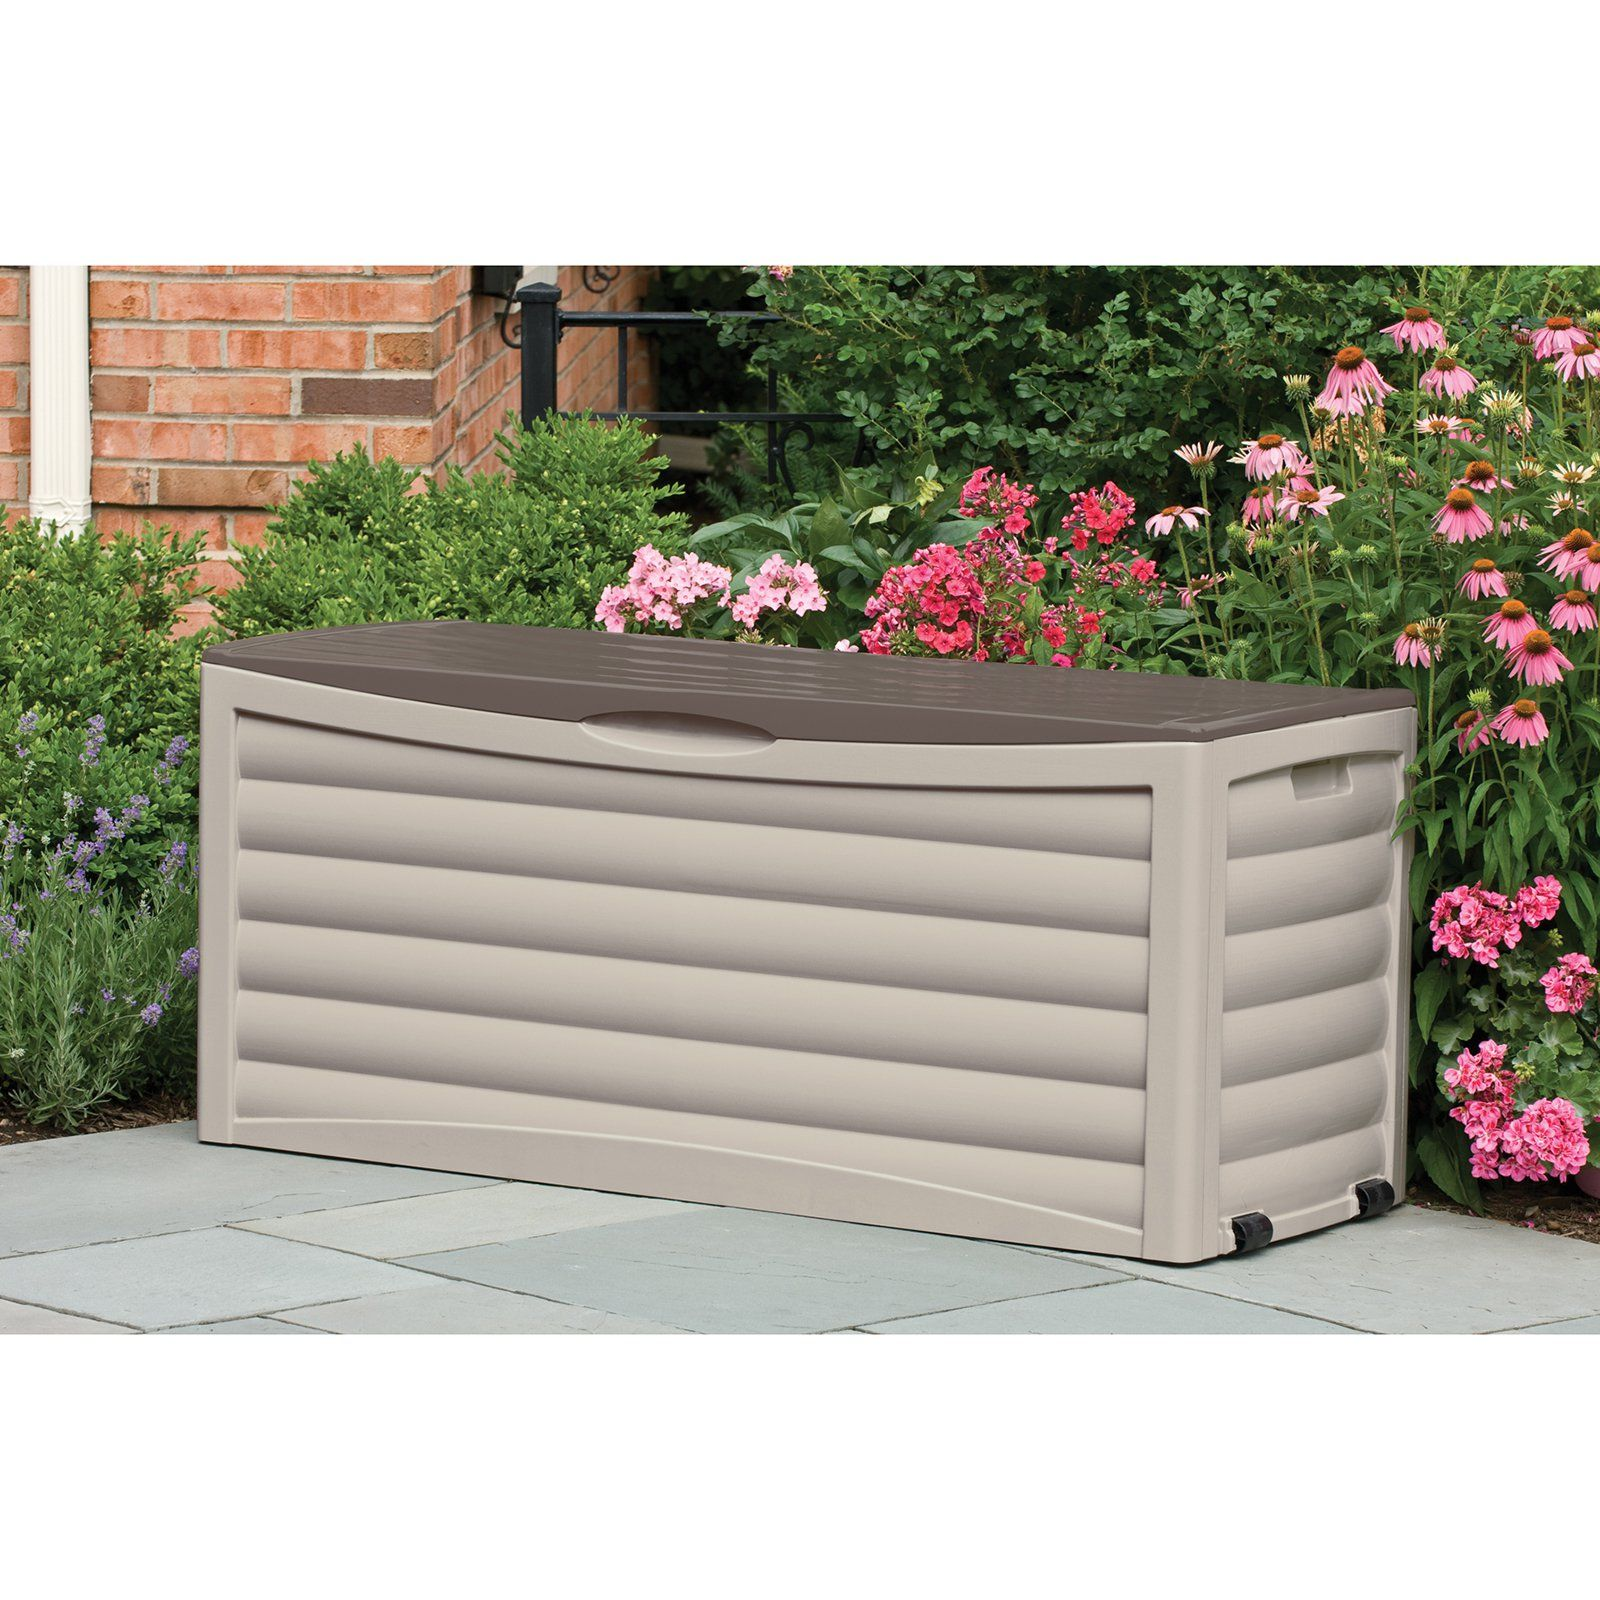 Outdoor Suncast Extra Large 103-gallon Patio Deck Box - Db10300 Products